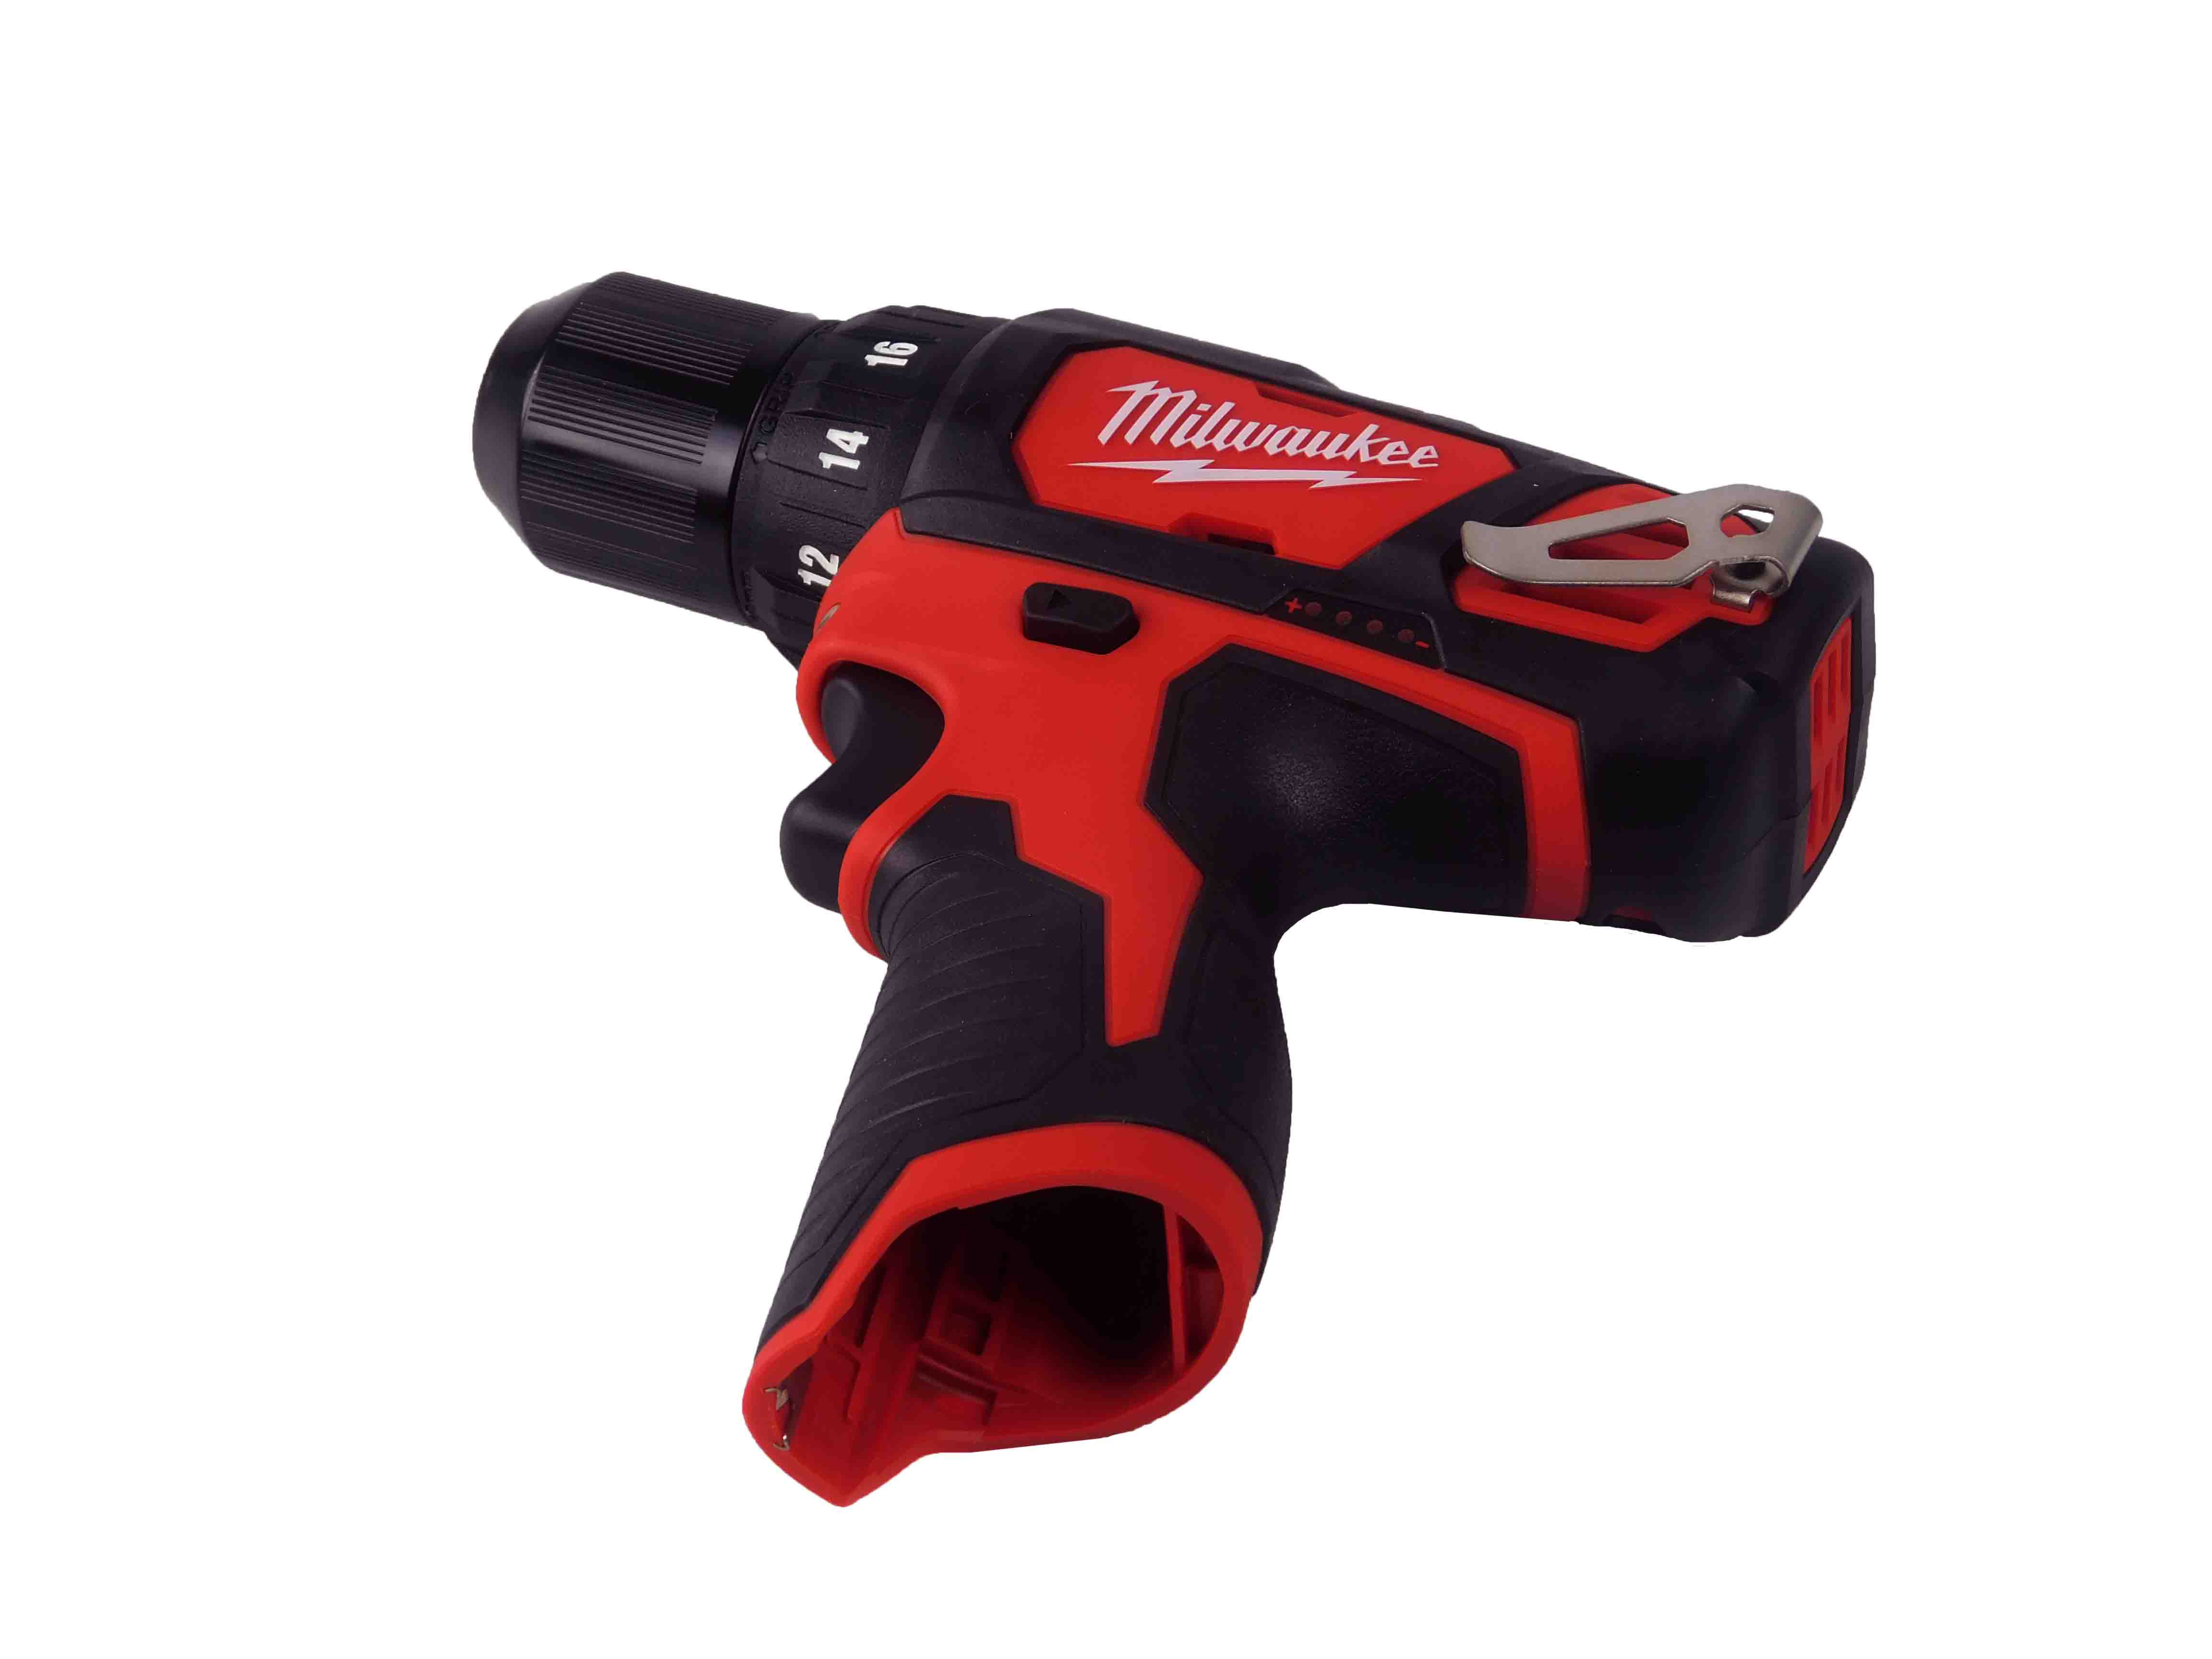 Milwaukee-2407-20-12V-M12-3-8inch-Chuck-Drill-Driver-2-Speed-image-4